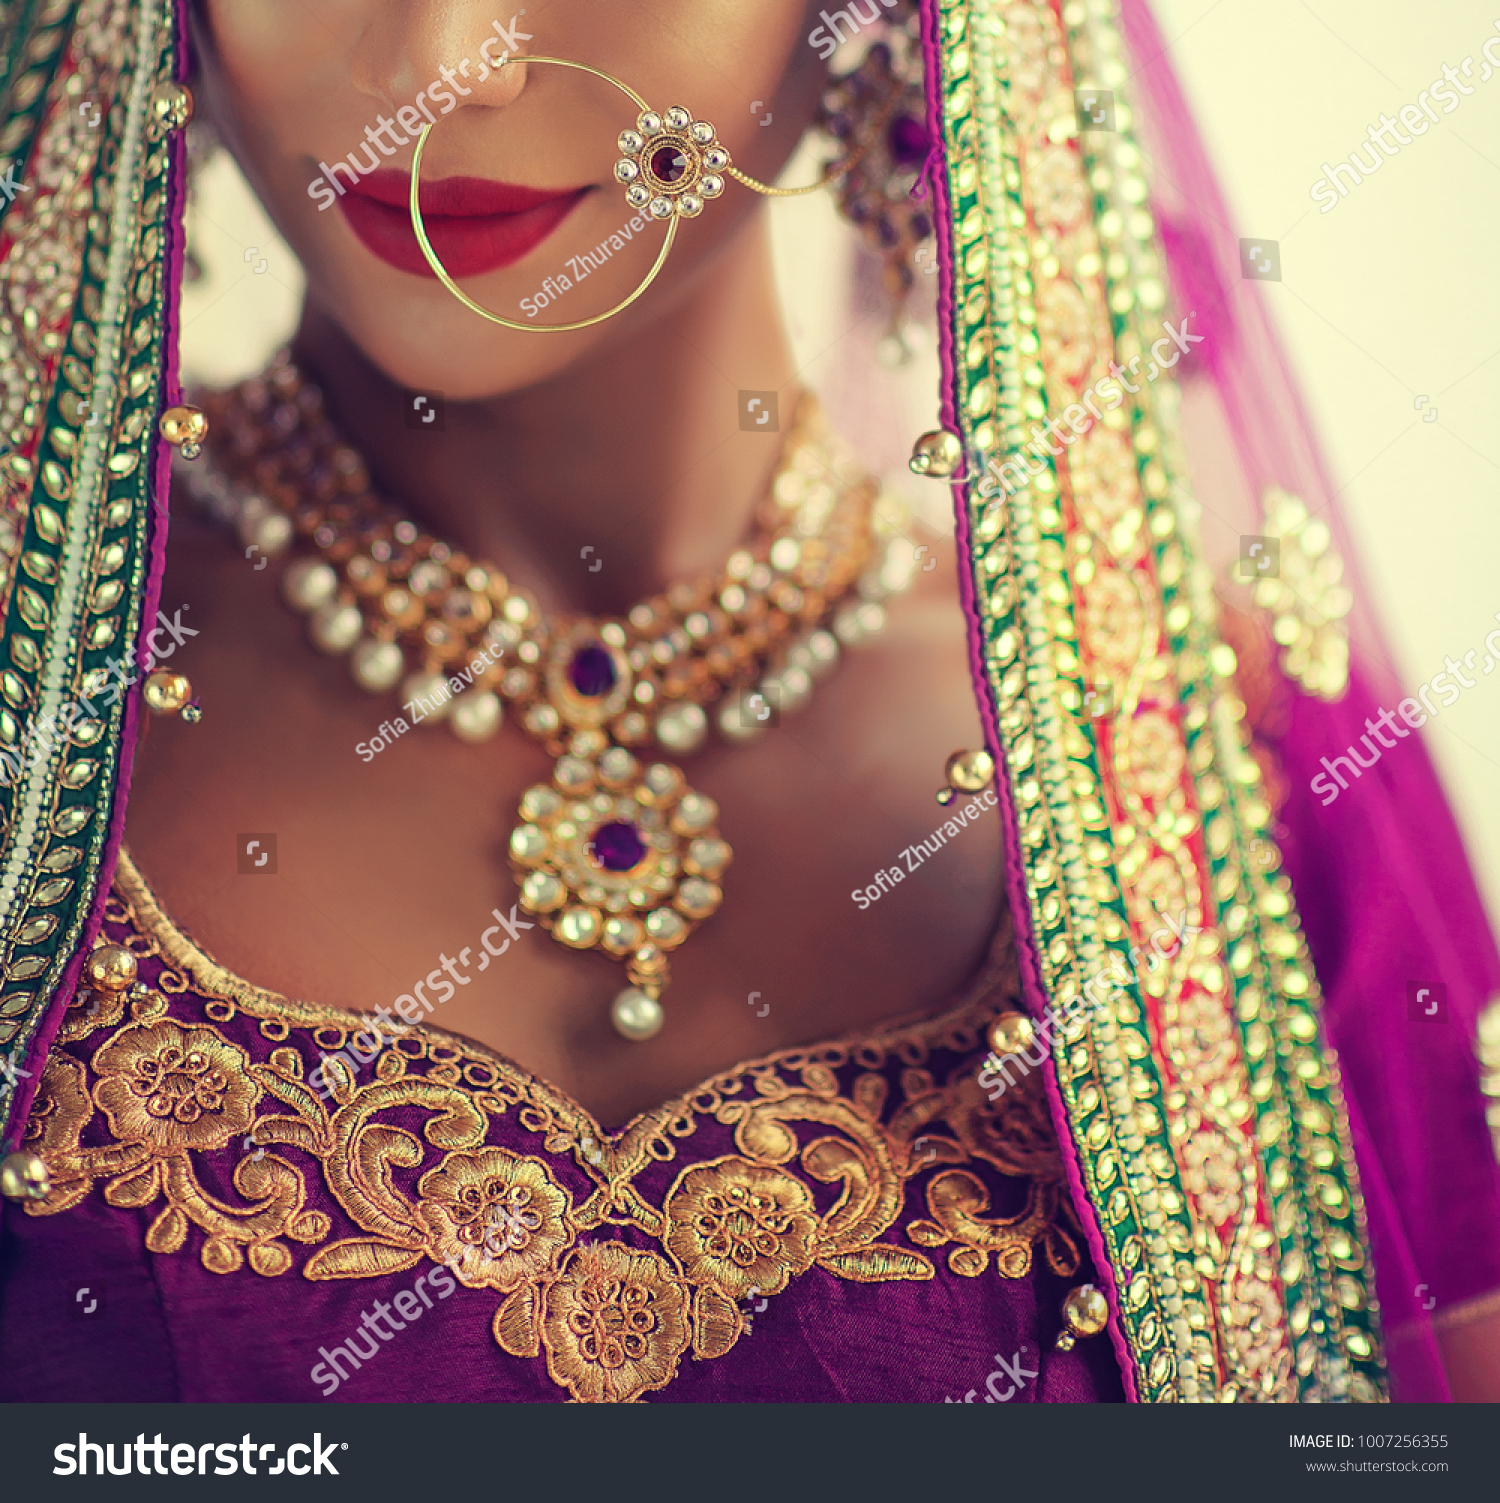 Portrait of beautiful indian girl. Young hindu woman model with kundan jewelry set. Traditional India costume lehenga choli or sari #1007256355